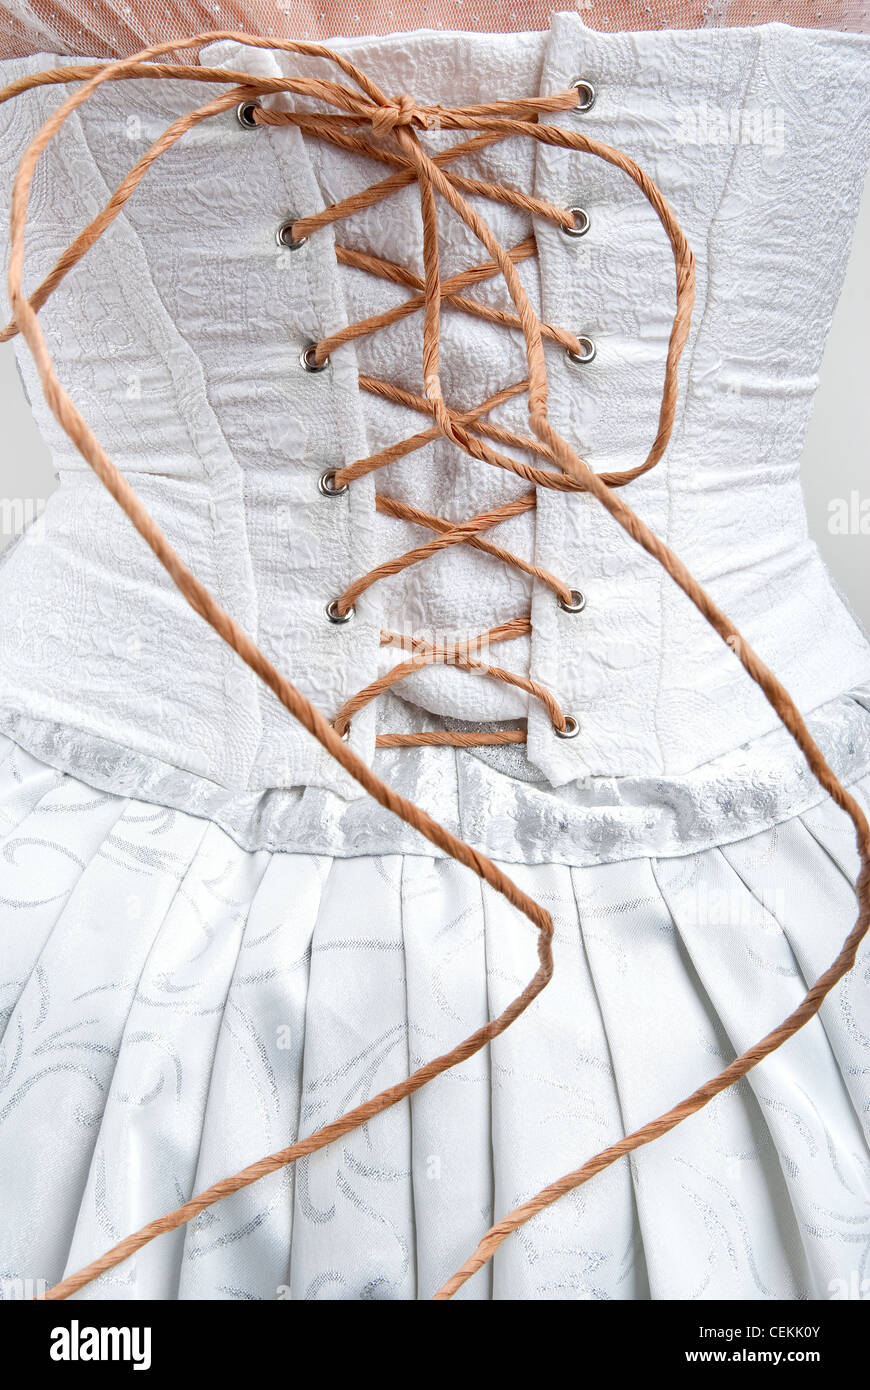 whtie corset roped with paper string - Stock Image